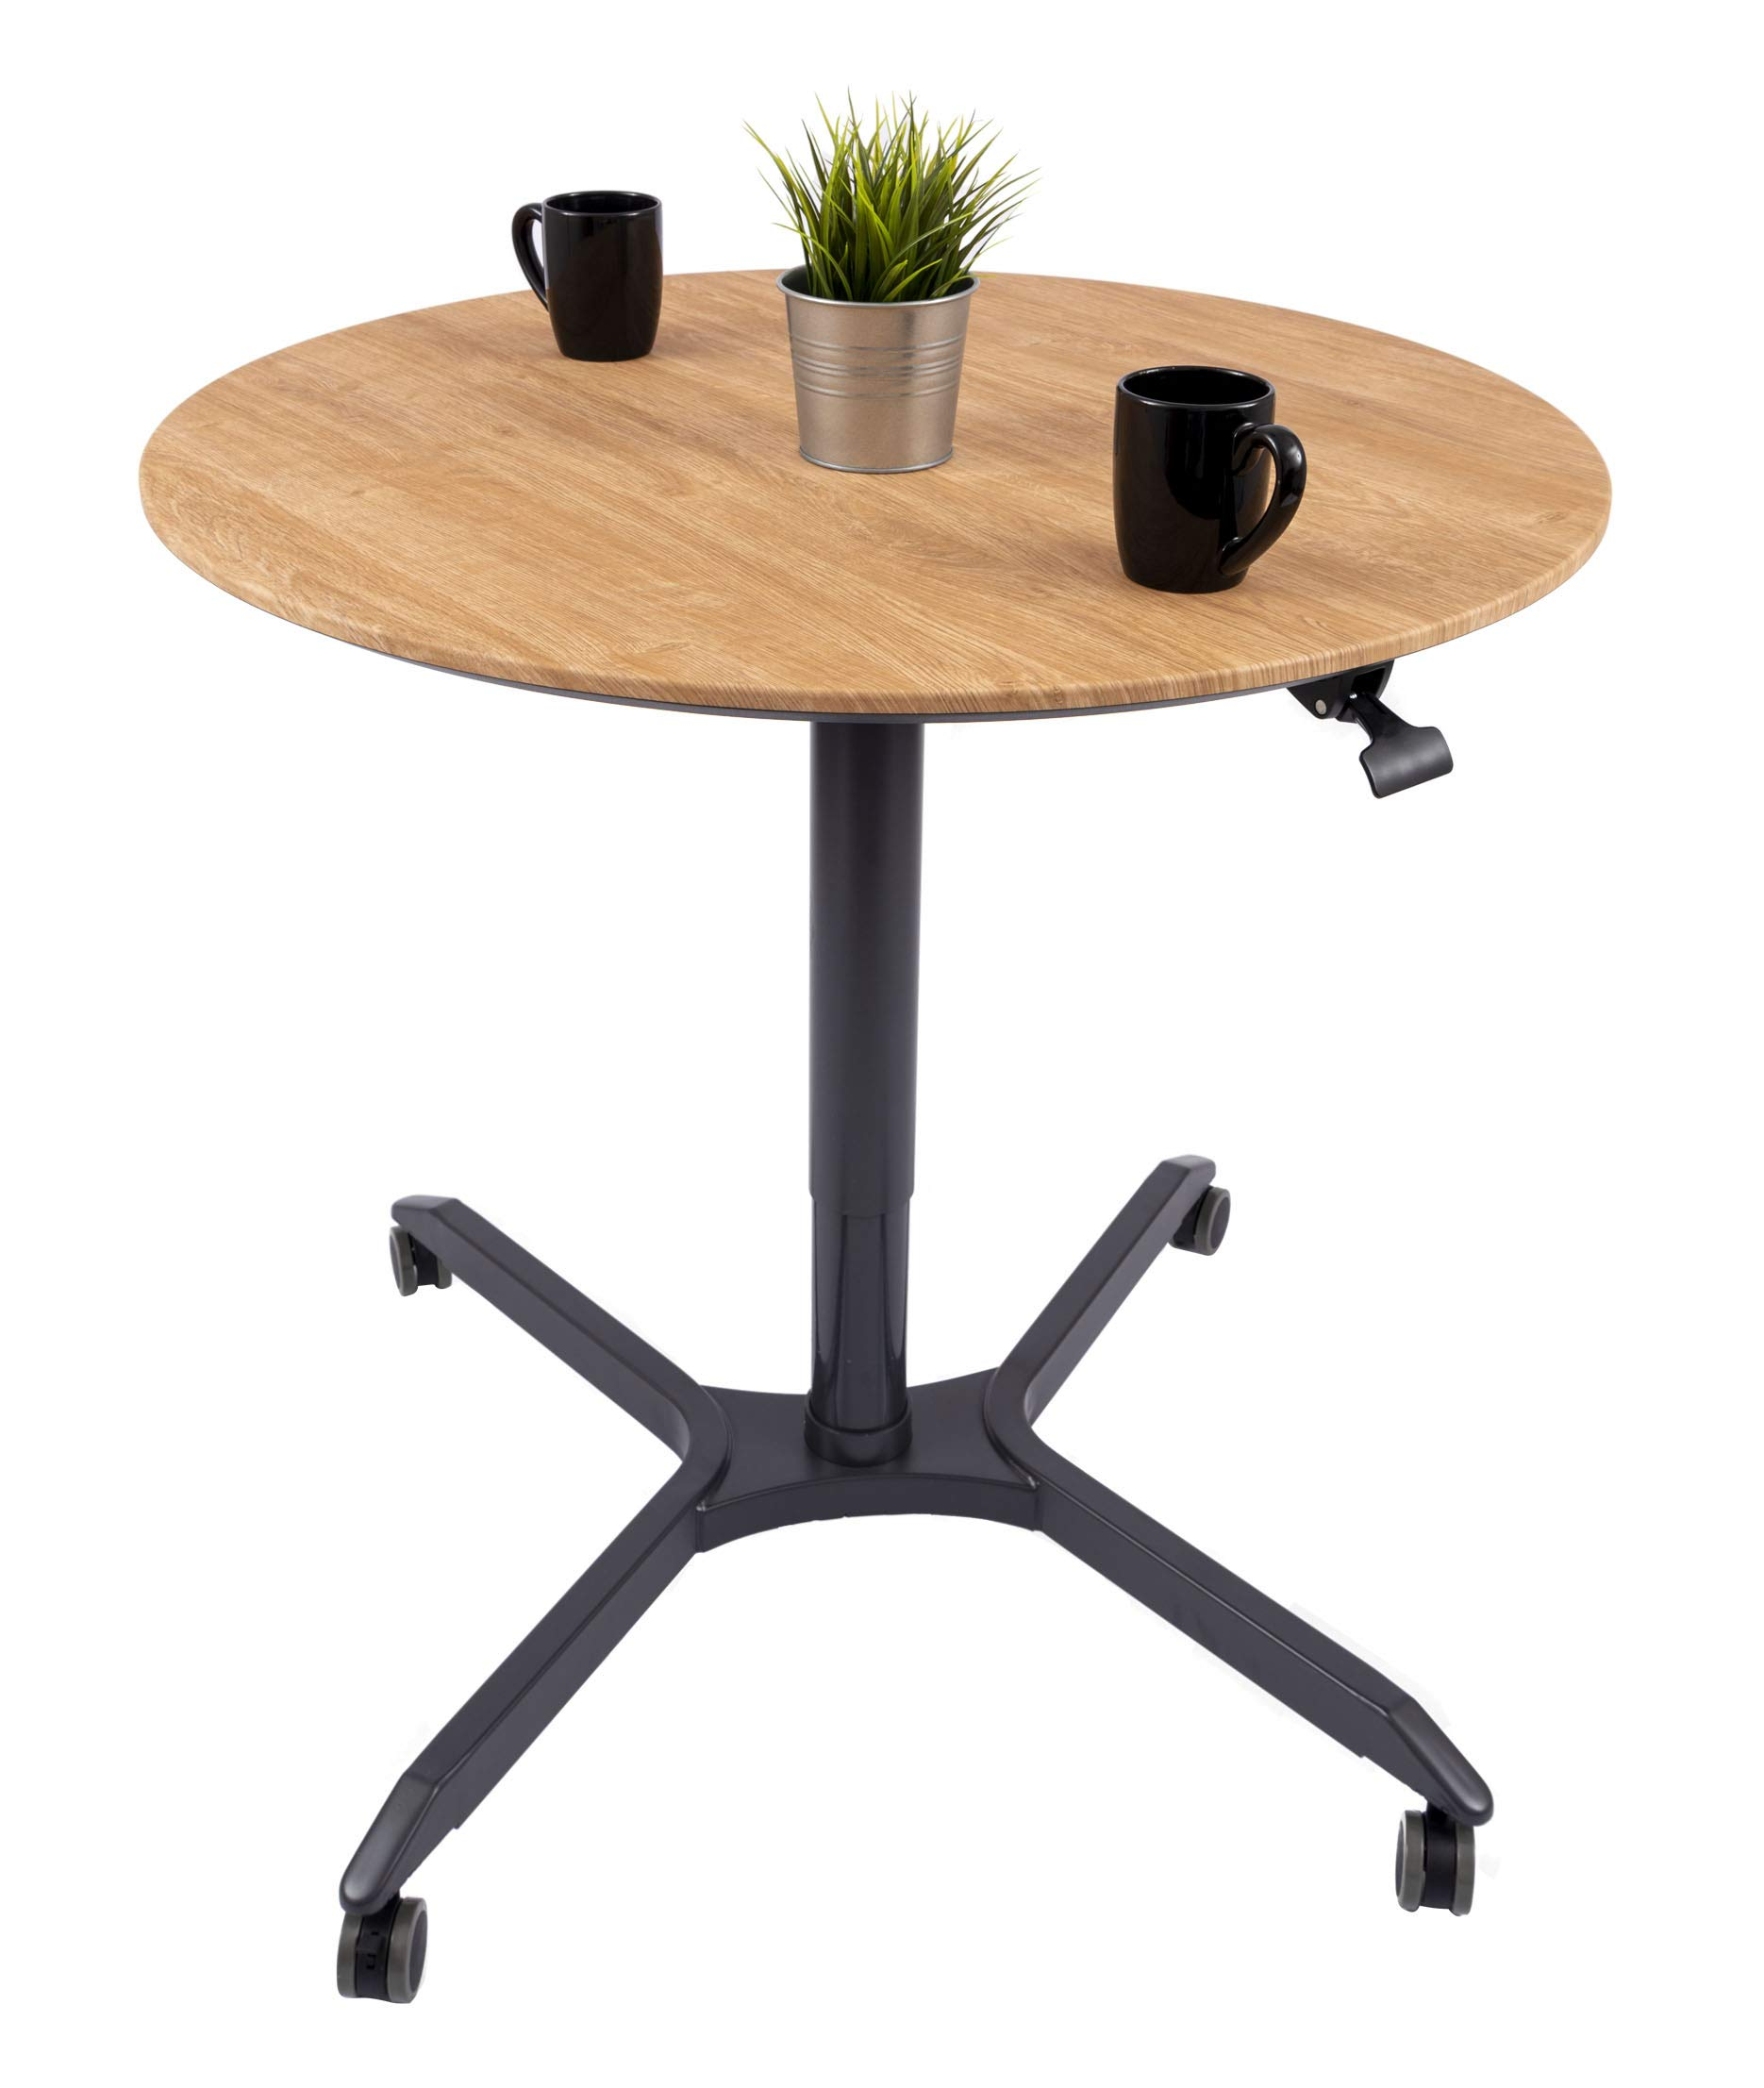 Pneumatic Adjustable-Height Cafe Table | Breakroom Table -(35'', Charcoal Frame/White Oak Top) by Stand Up Desk Store